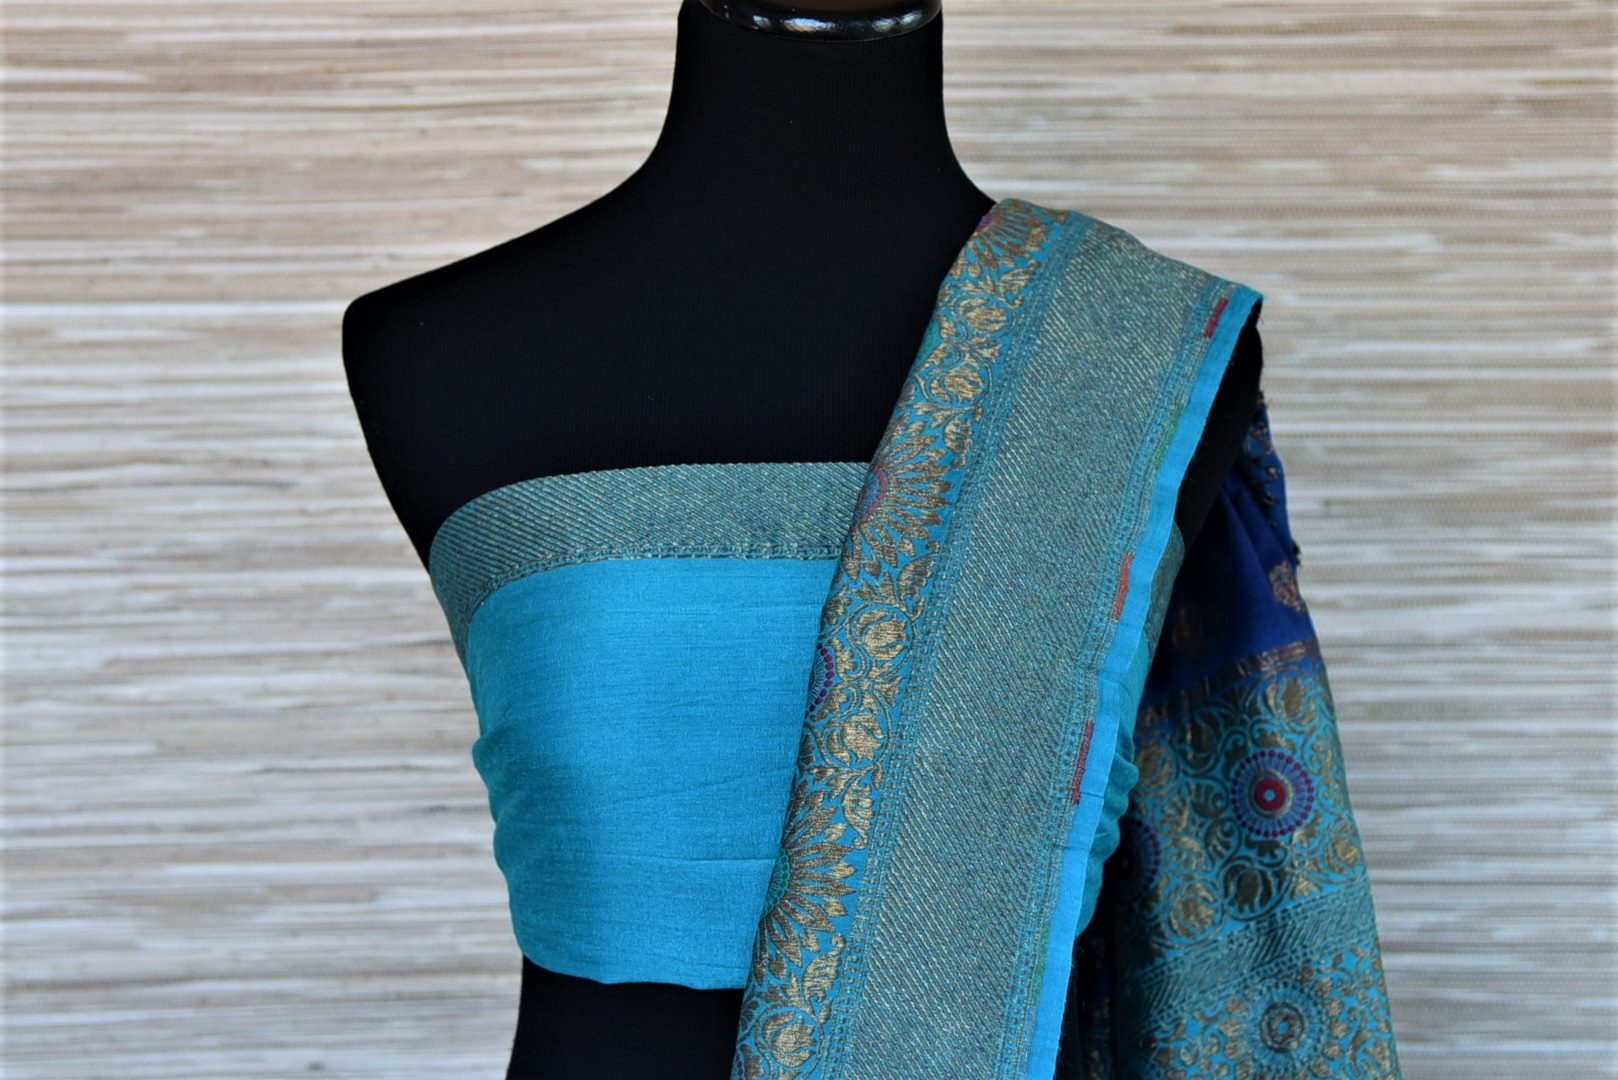 Shop indigo muga Banarasi sari online in USA with antique zari minakari blue border and buta. Be a vision of tradition and elegance on weddings and festivals with exquisite Banarasi silk sarees, muga silk sarees, handwoven sarees from Pure Elegance Indian clothing store in USA.-blouse pallu